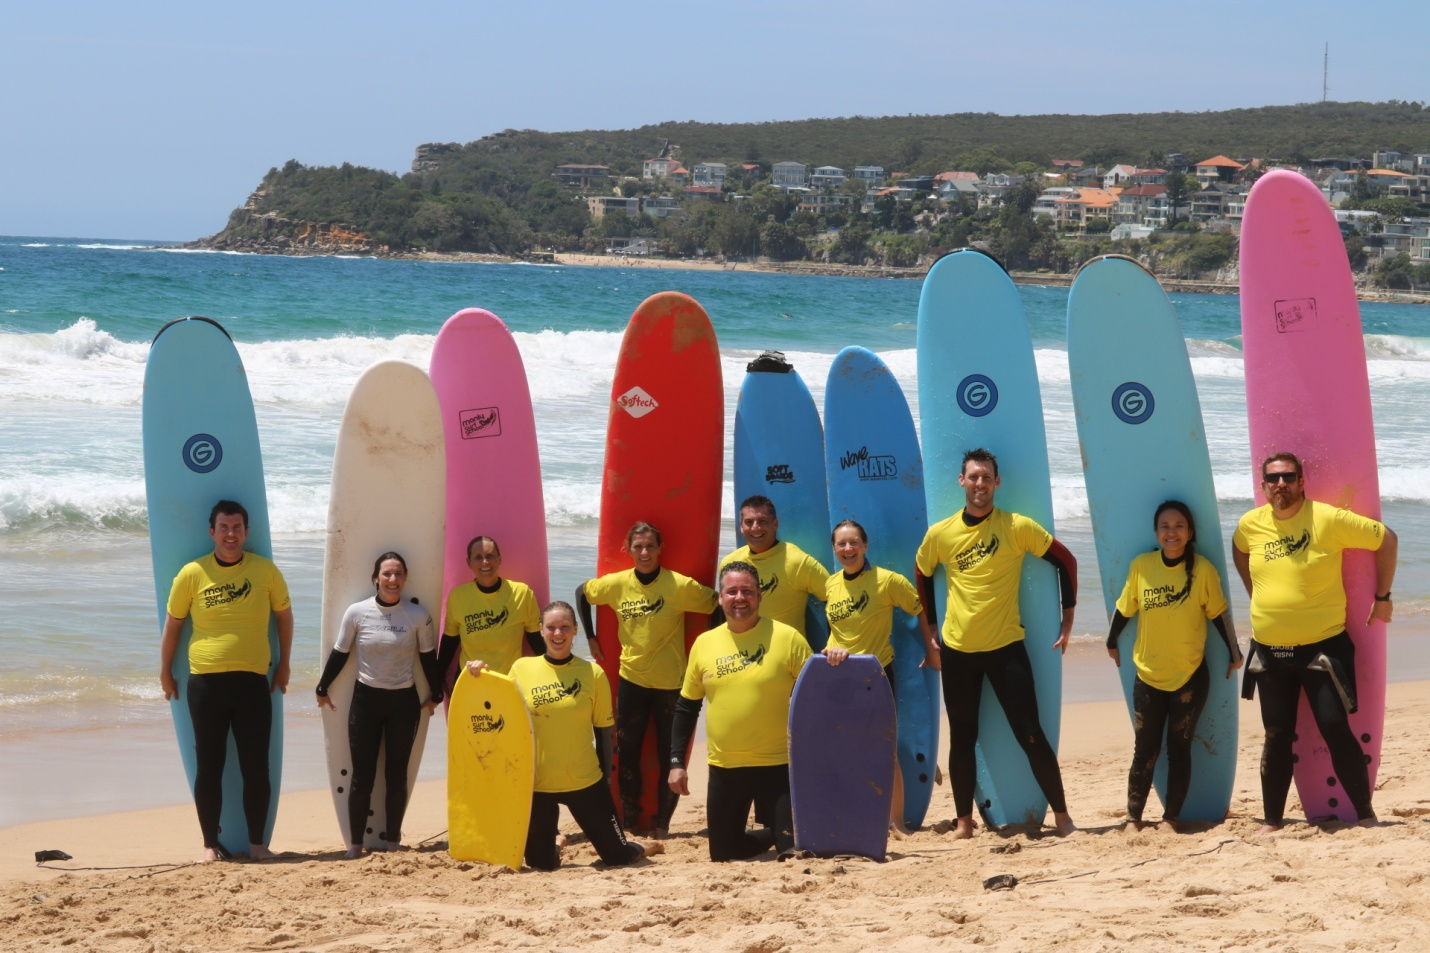 2016 AirPlus International Christmas Party, Surfing lesson on Manly beach.